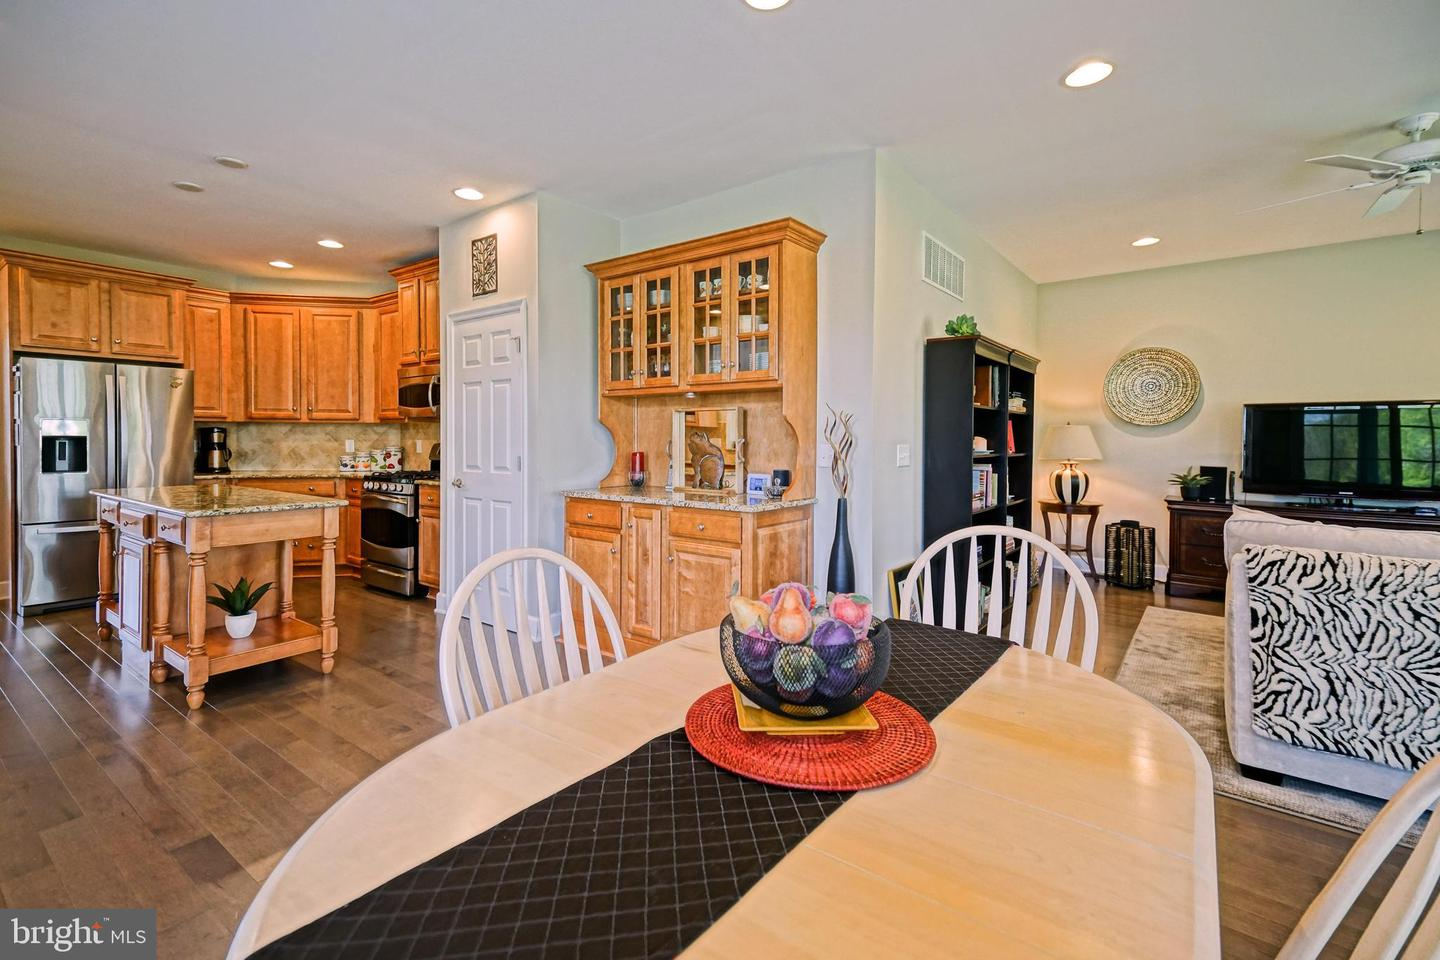 DESU139128-301667381258-2019-08-05-10-43-55 35222 Overfalls Dr N | Lewes, DE Real Estate For Sale | MLS# Desu139128  - Lee Ann Group